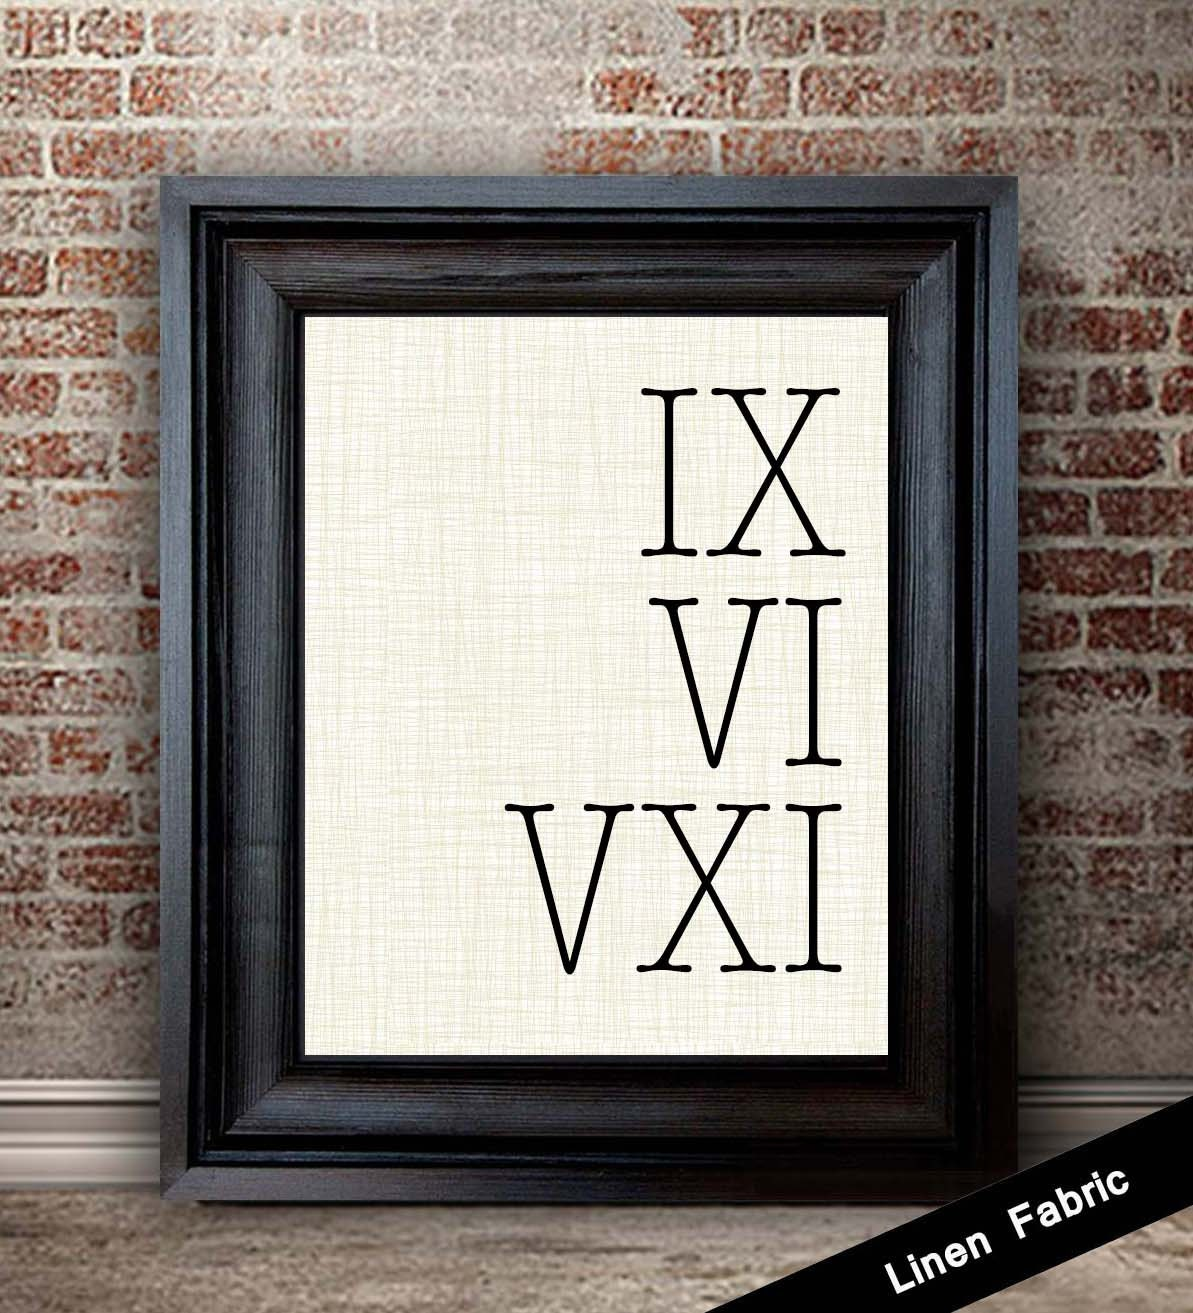 Fourth Wedding Anniversary Gift Ideas For Him: 4th Anniversary Gift For Men Roman Numeral Sign 4 Year